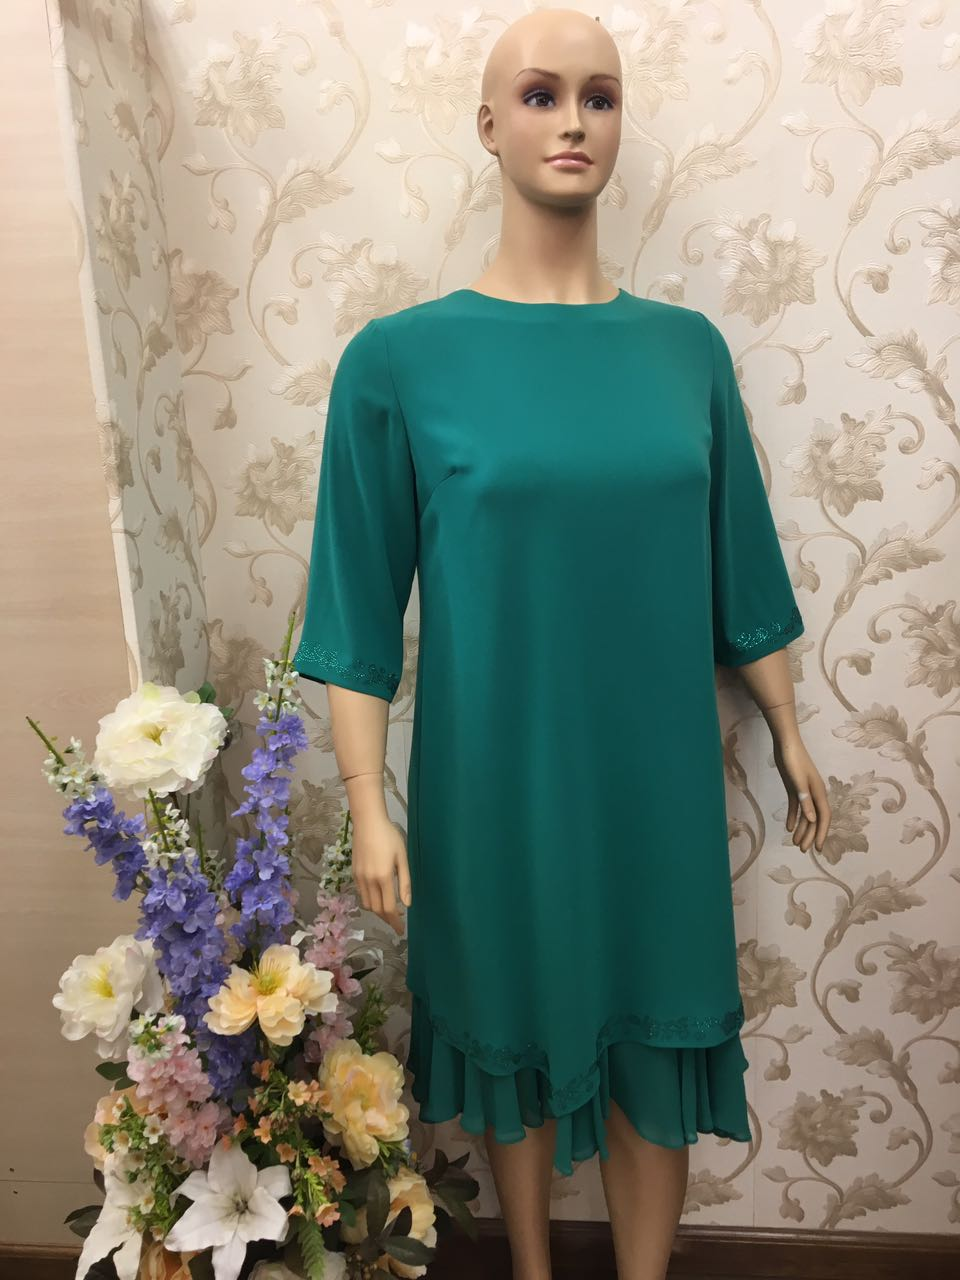 piacevole-embroidery-and-beads-insert-luxury-emerald-dress